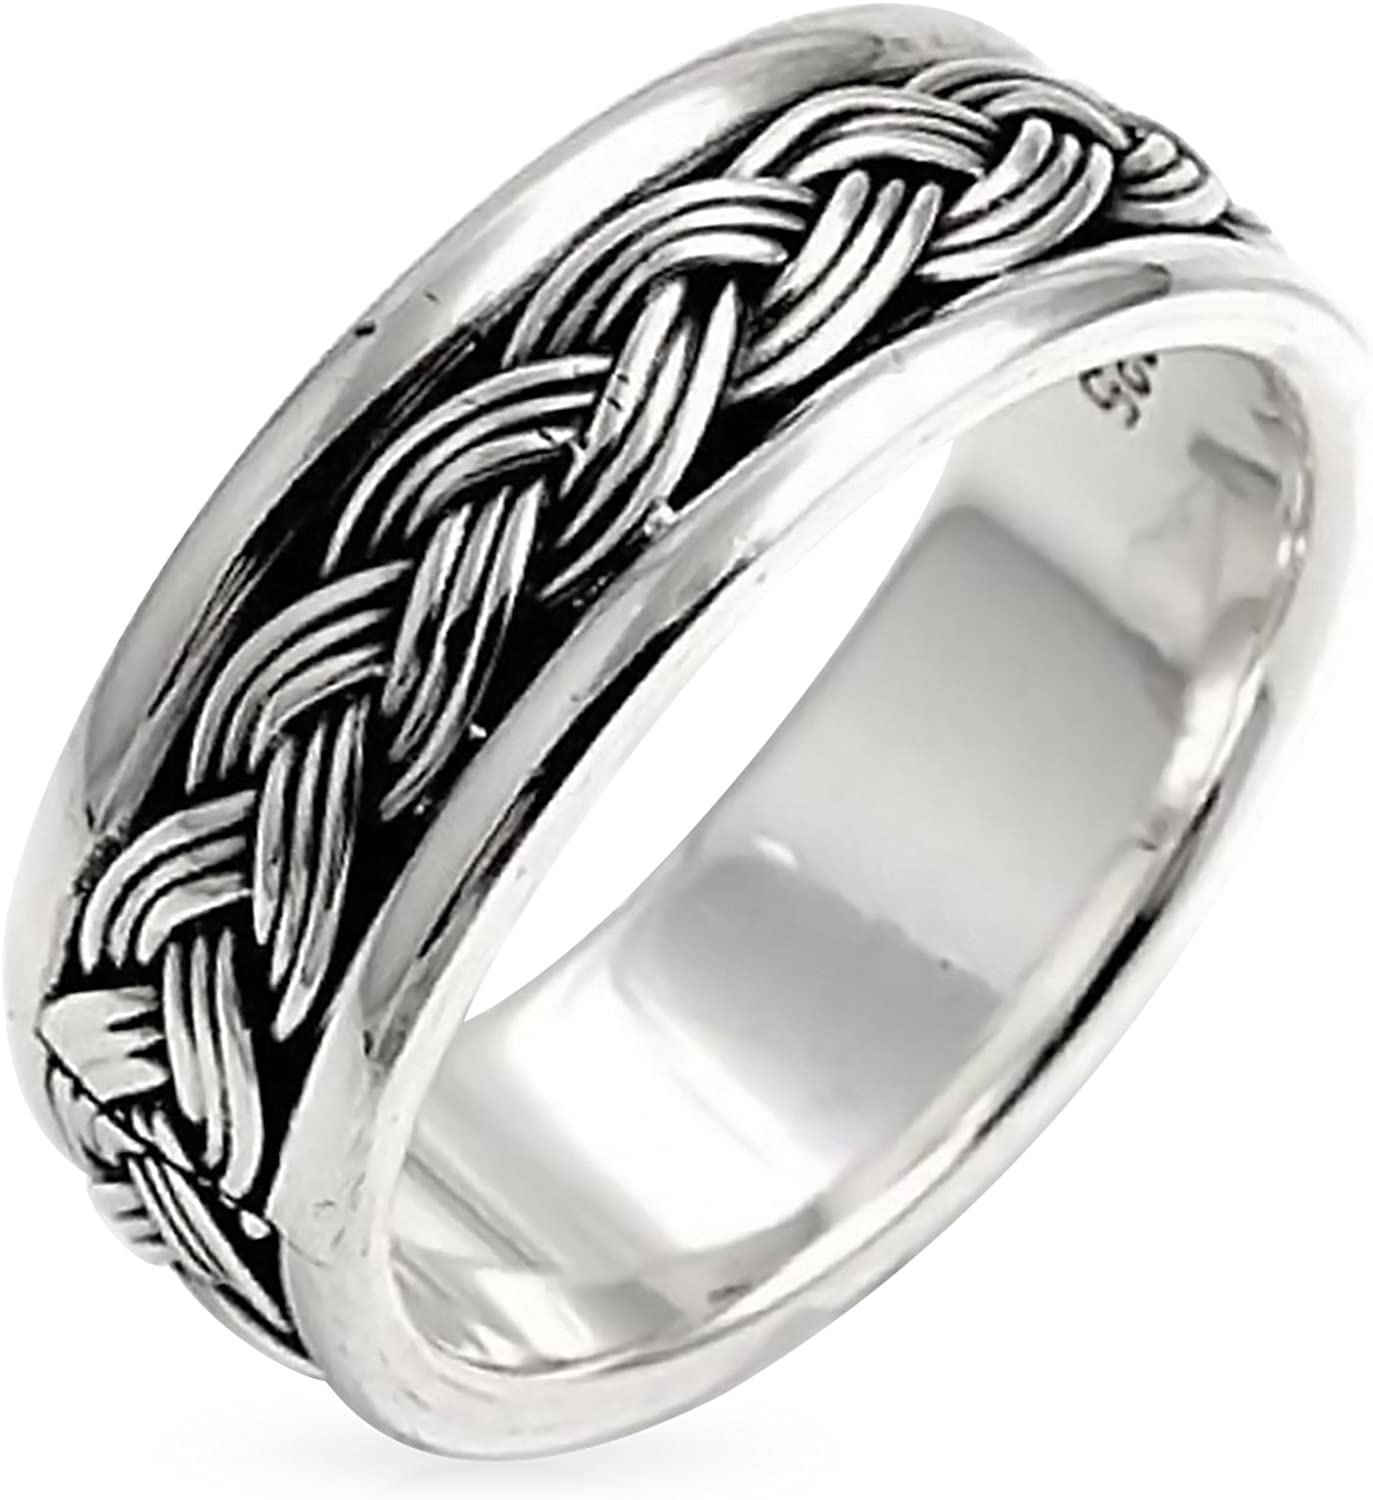 Buy For Less Oxidized 925 Sterling Silver Braided Spinner Ring